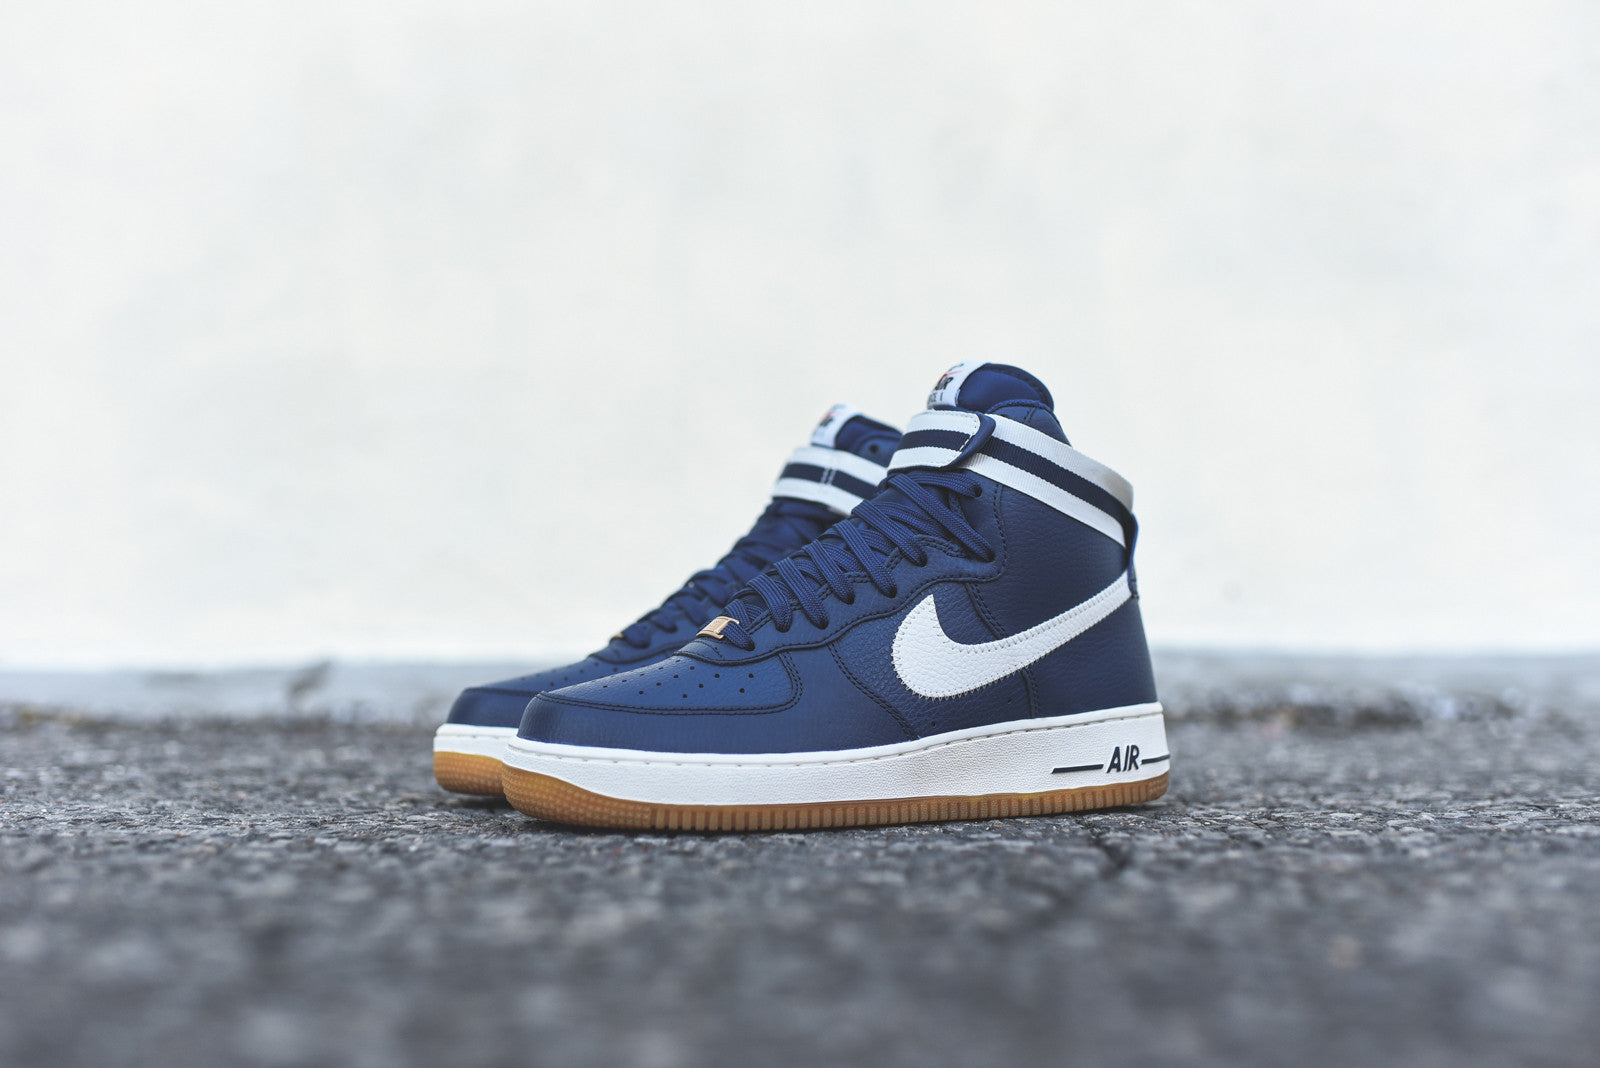 Nike Air Force 1 Hi '07 - Coastal Blue